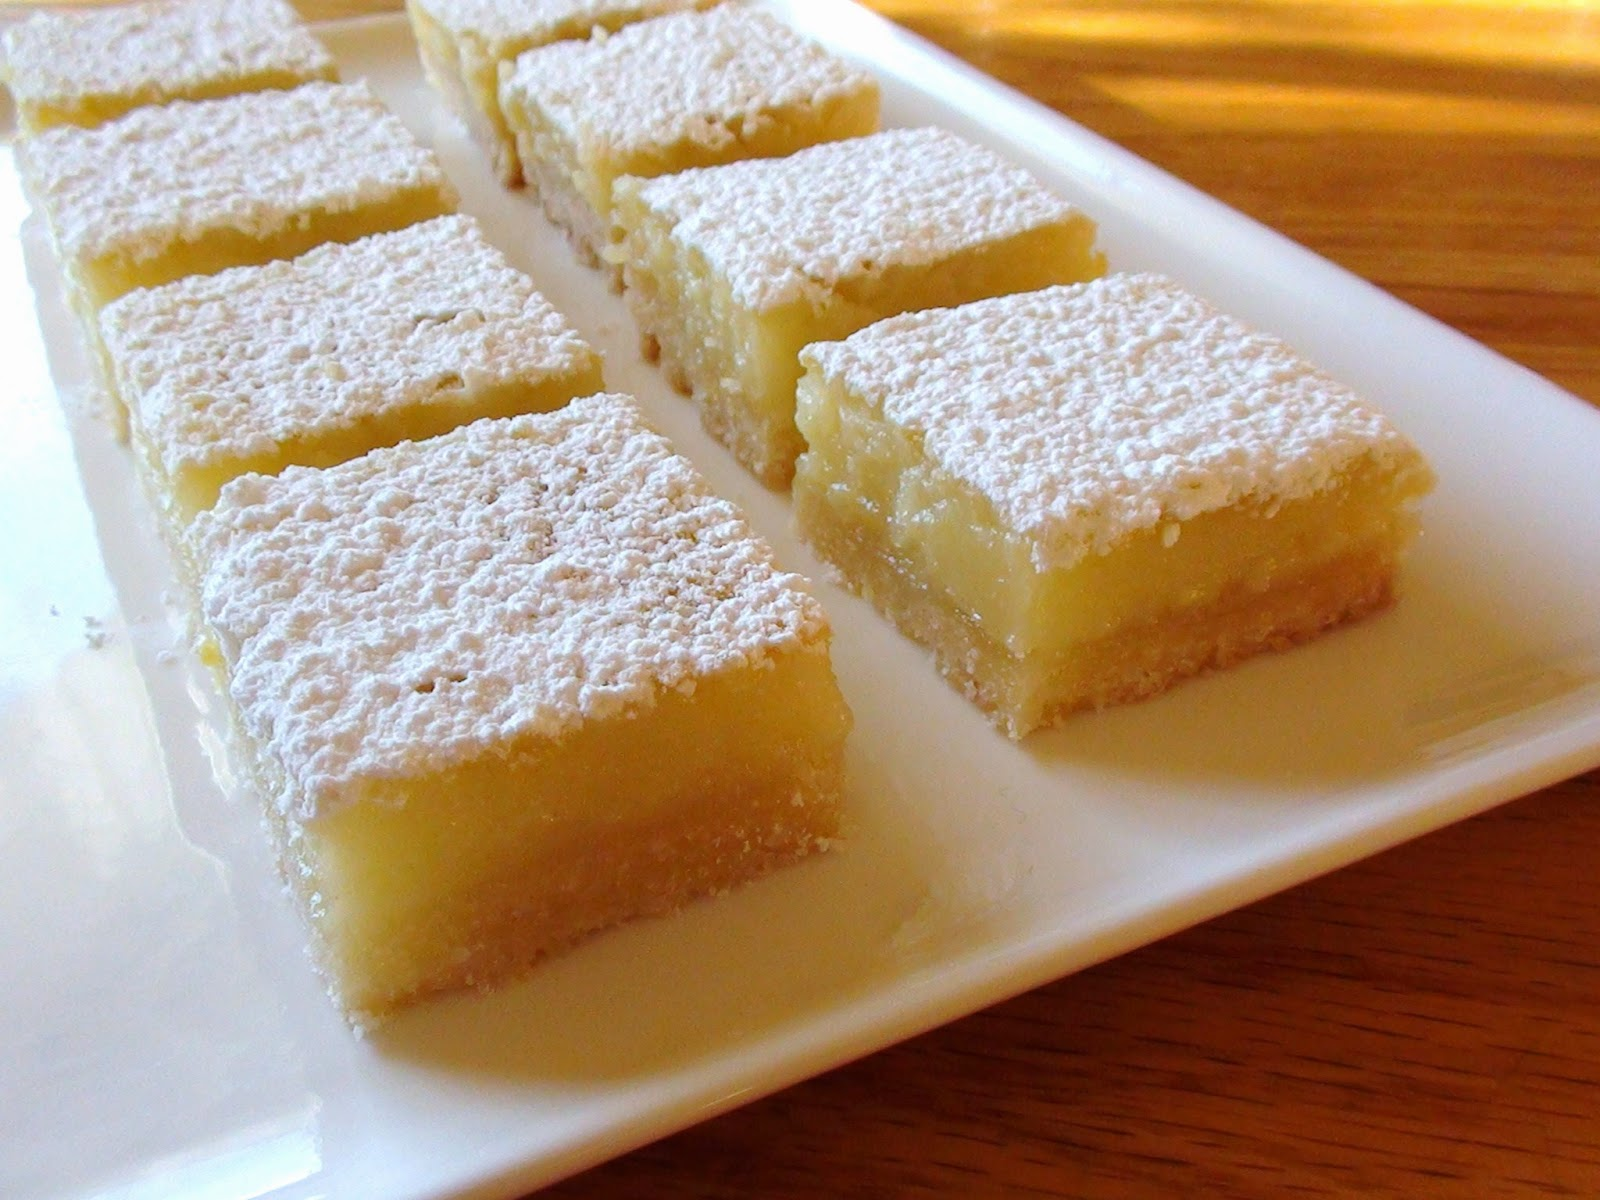 ... lemon bars shortbread lemon bars lemon square bars meyer lemon bars